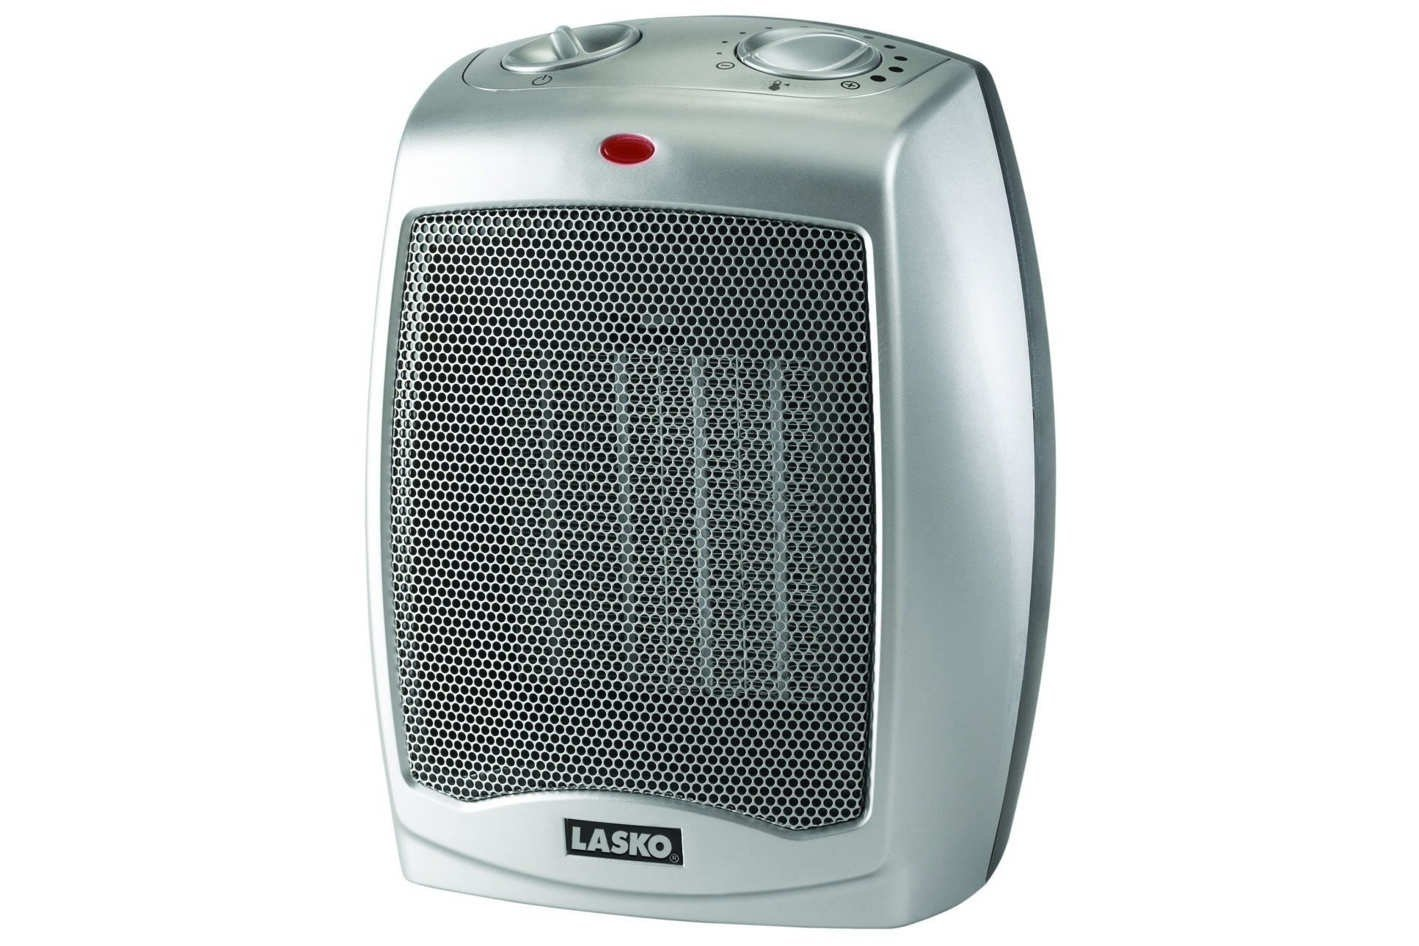 Best 10 Loving Small Heater For Bedroom On A Budget Idées De With Pictures